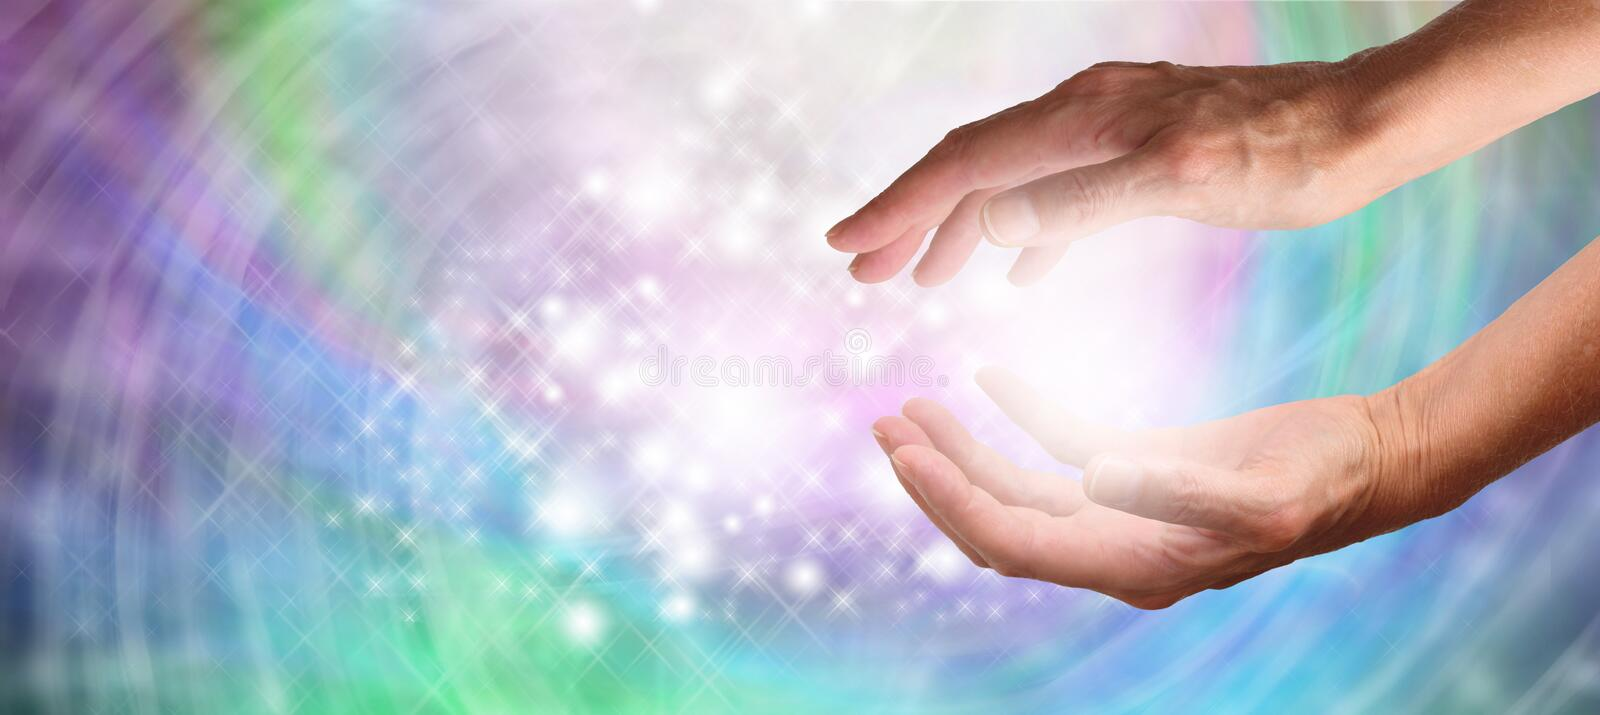 Healing hands and sparkling energy royalty free stock images